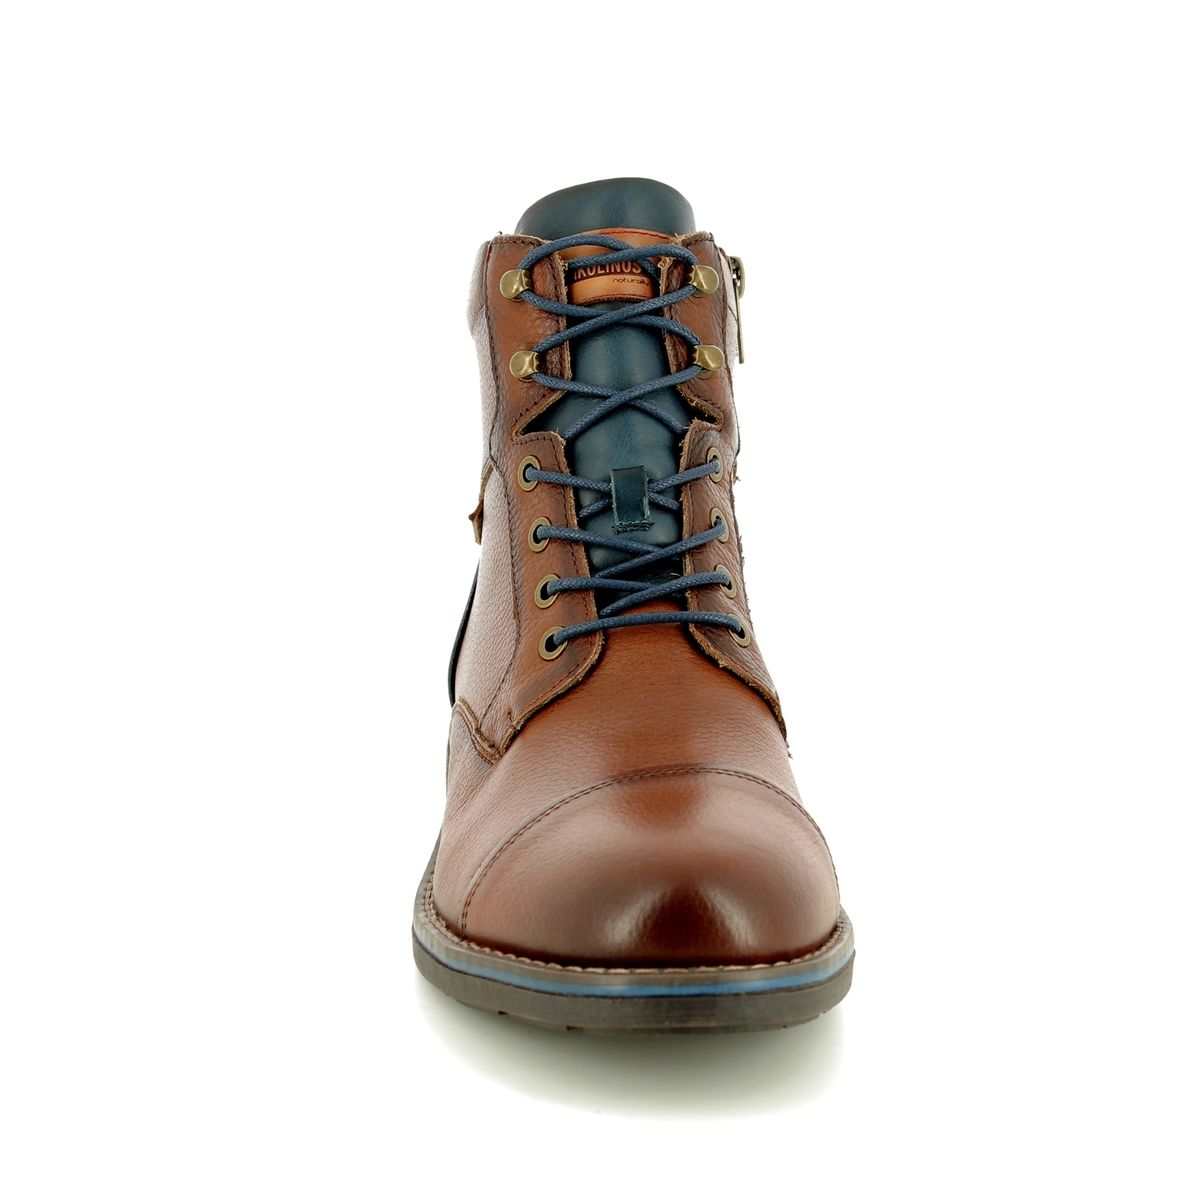 bc6f35d1d11b3 Pikolinos Boots - Tan Leather - M2M8170/11 YORK